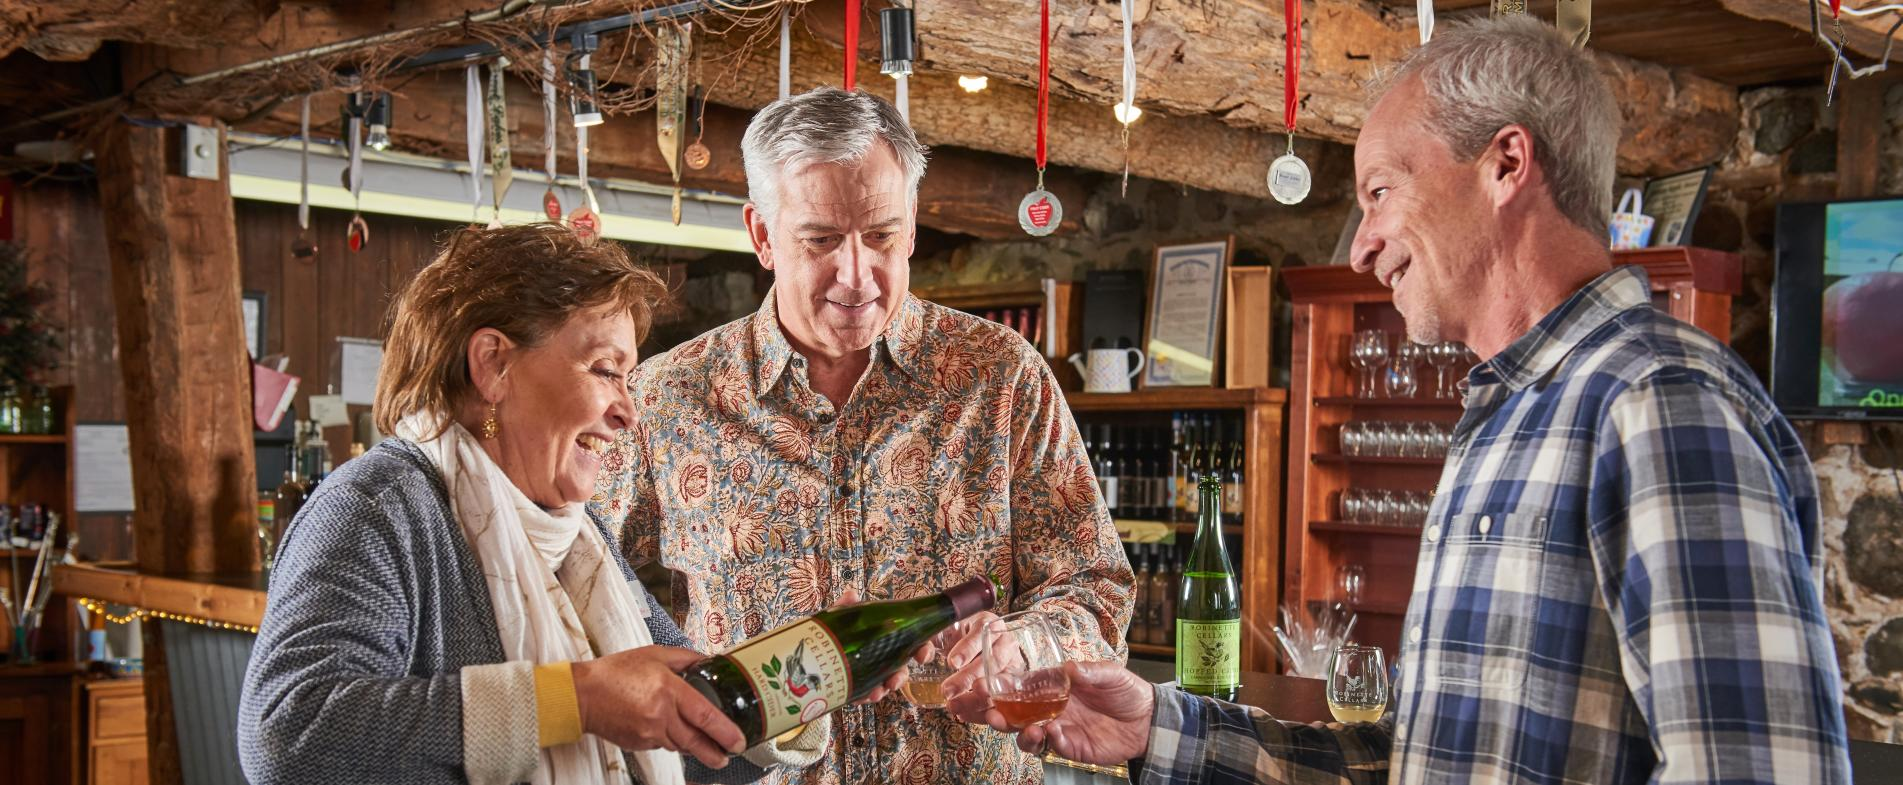 Cider Week GR is a great time to get to know area cider producers.